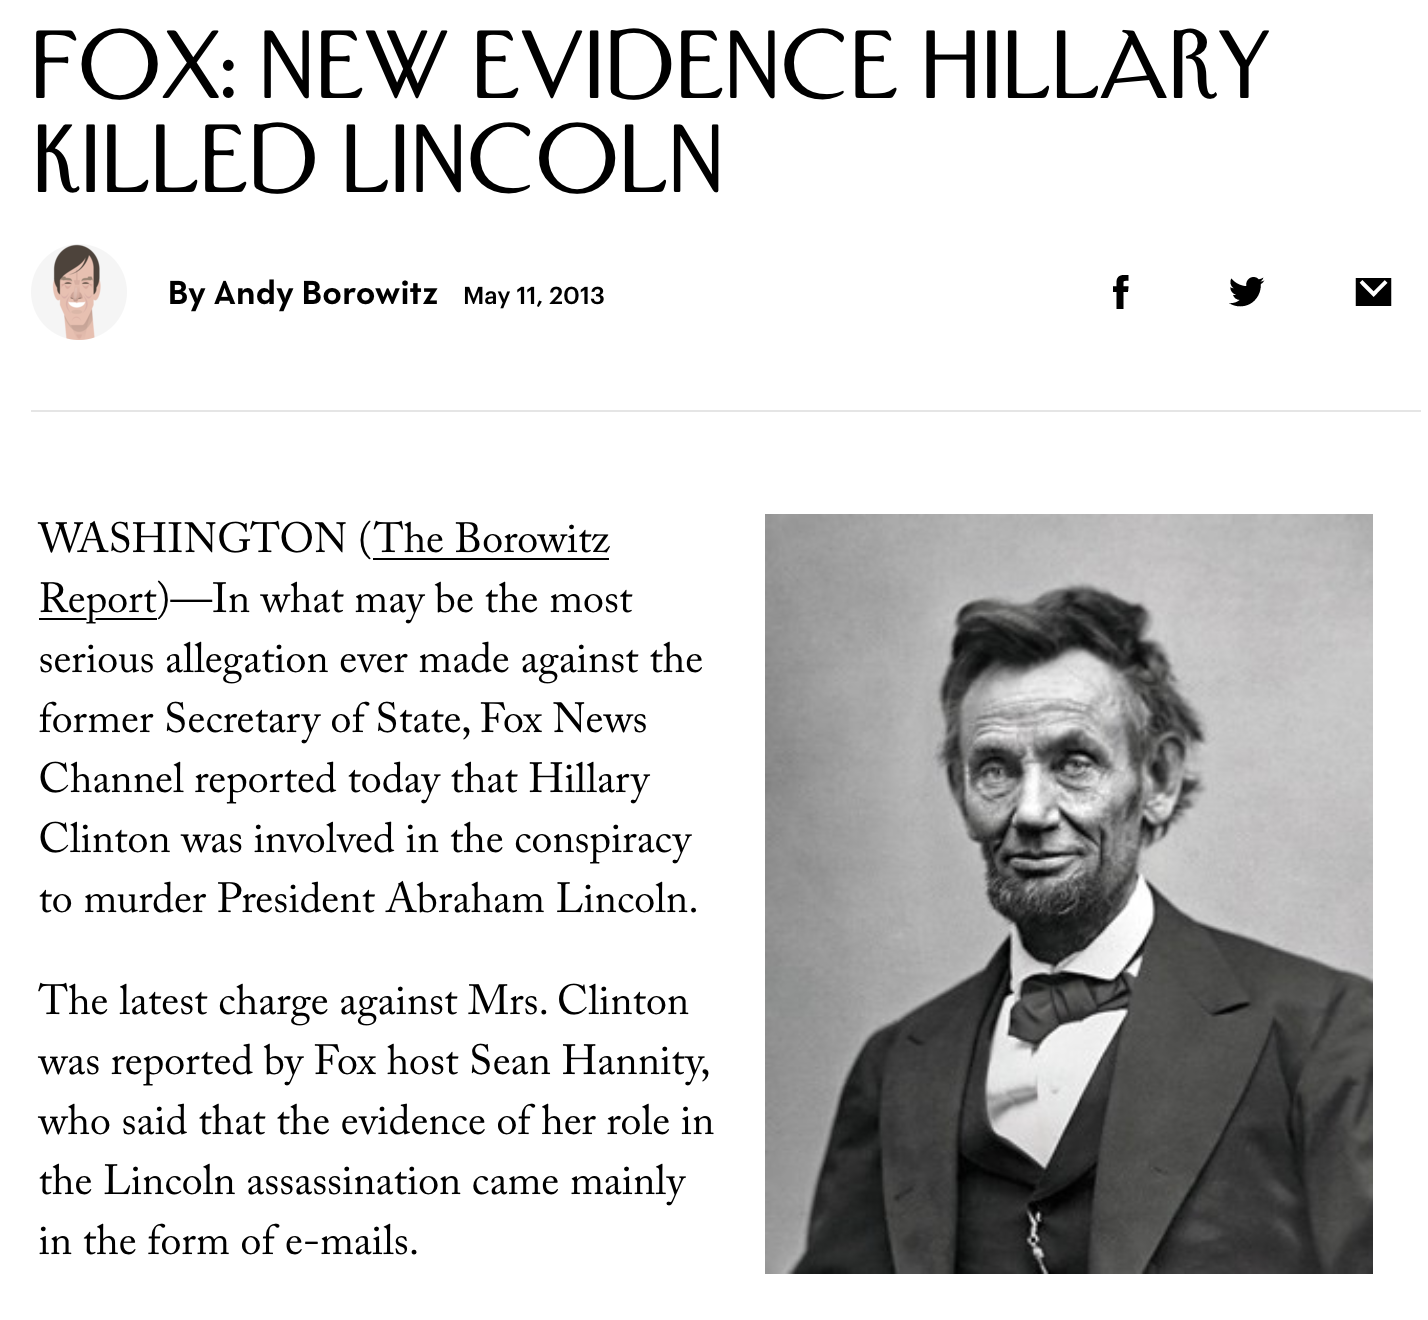 lincoln.png.4e8cced260f41ade2785dd8a3bc571a4.png